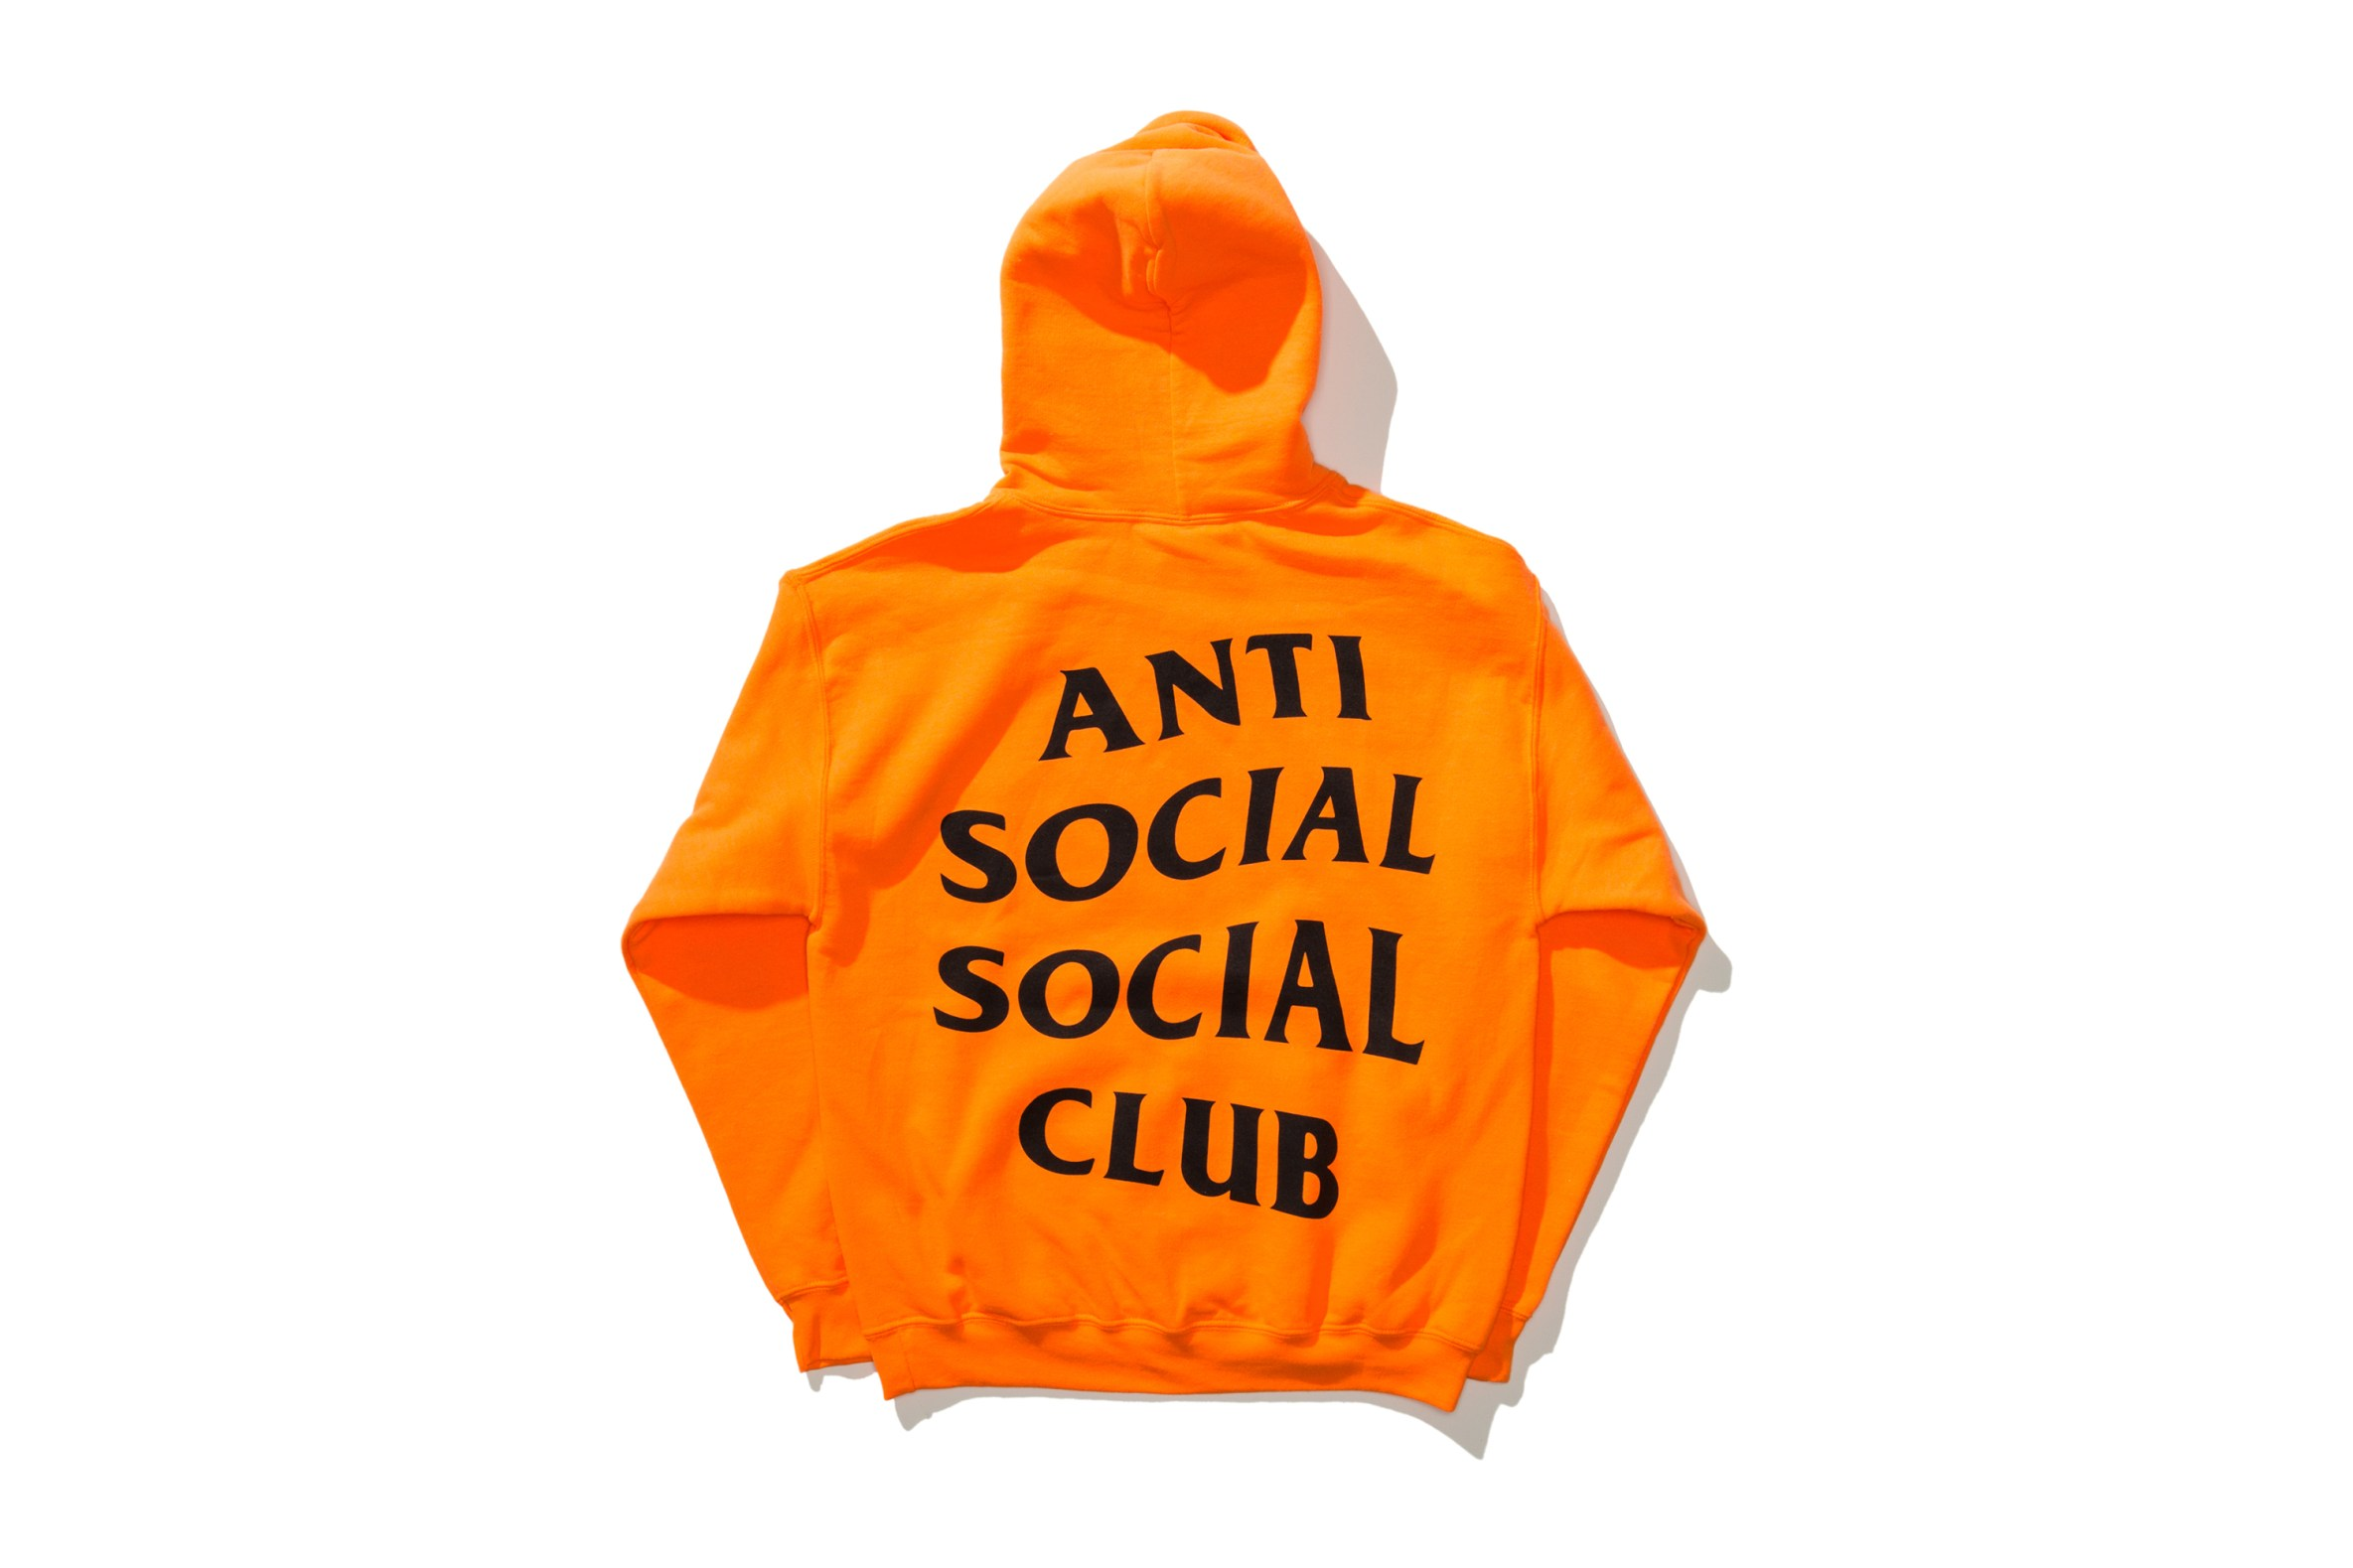 8cb8e9c5db54 Undefeated x Anti Social Social Club 2016 Collection